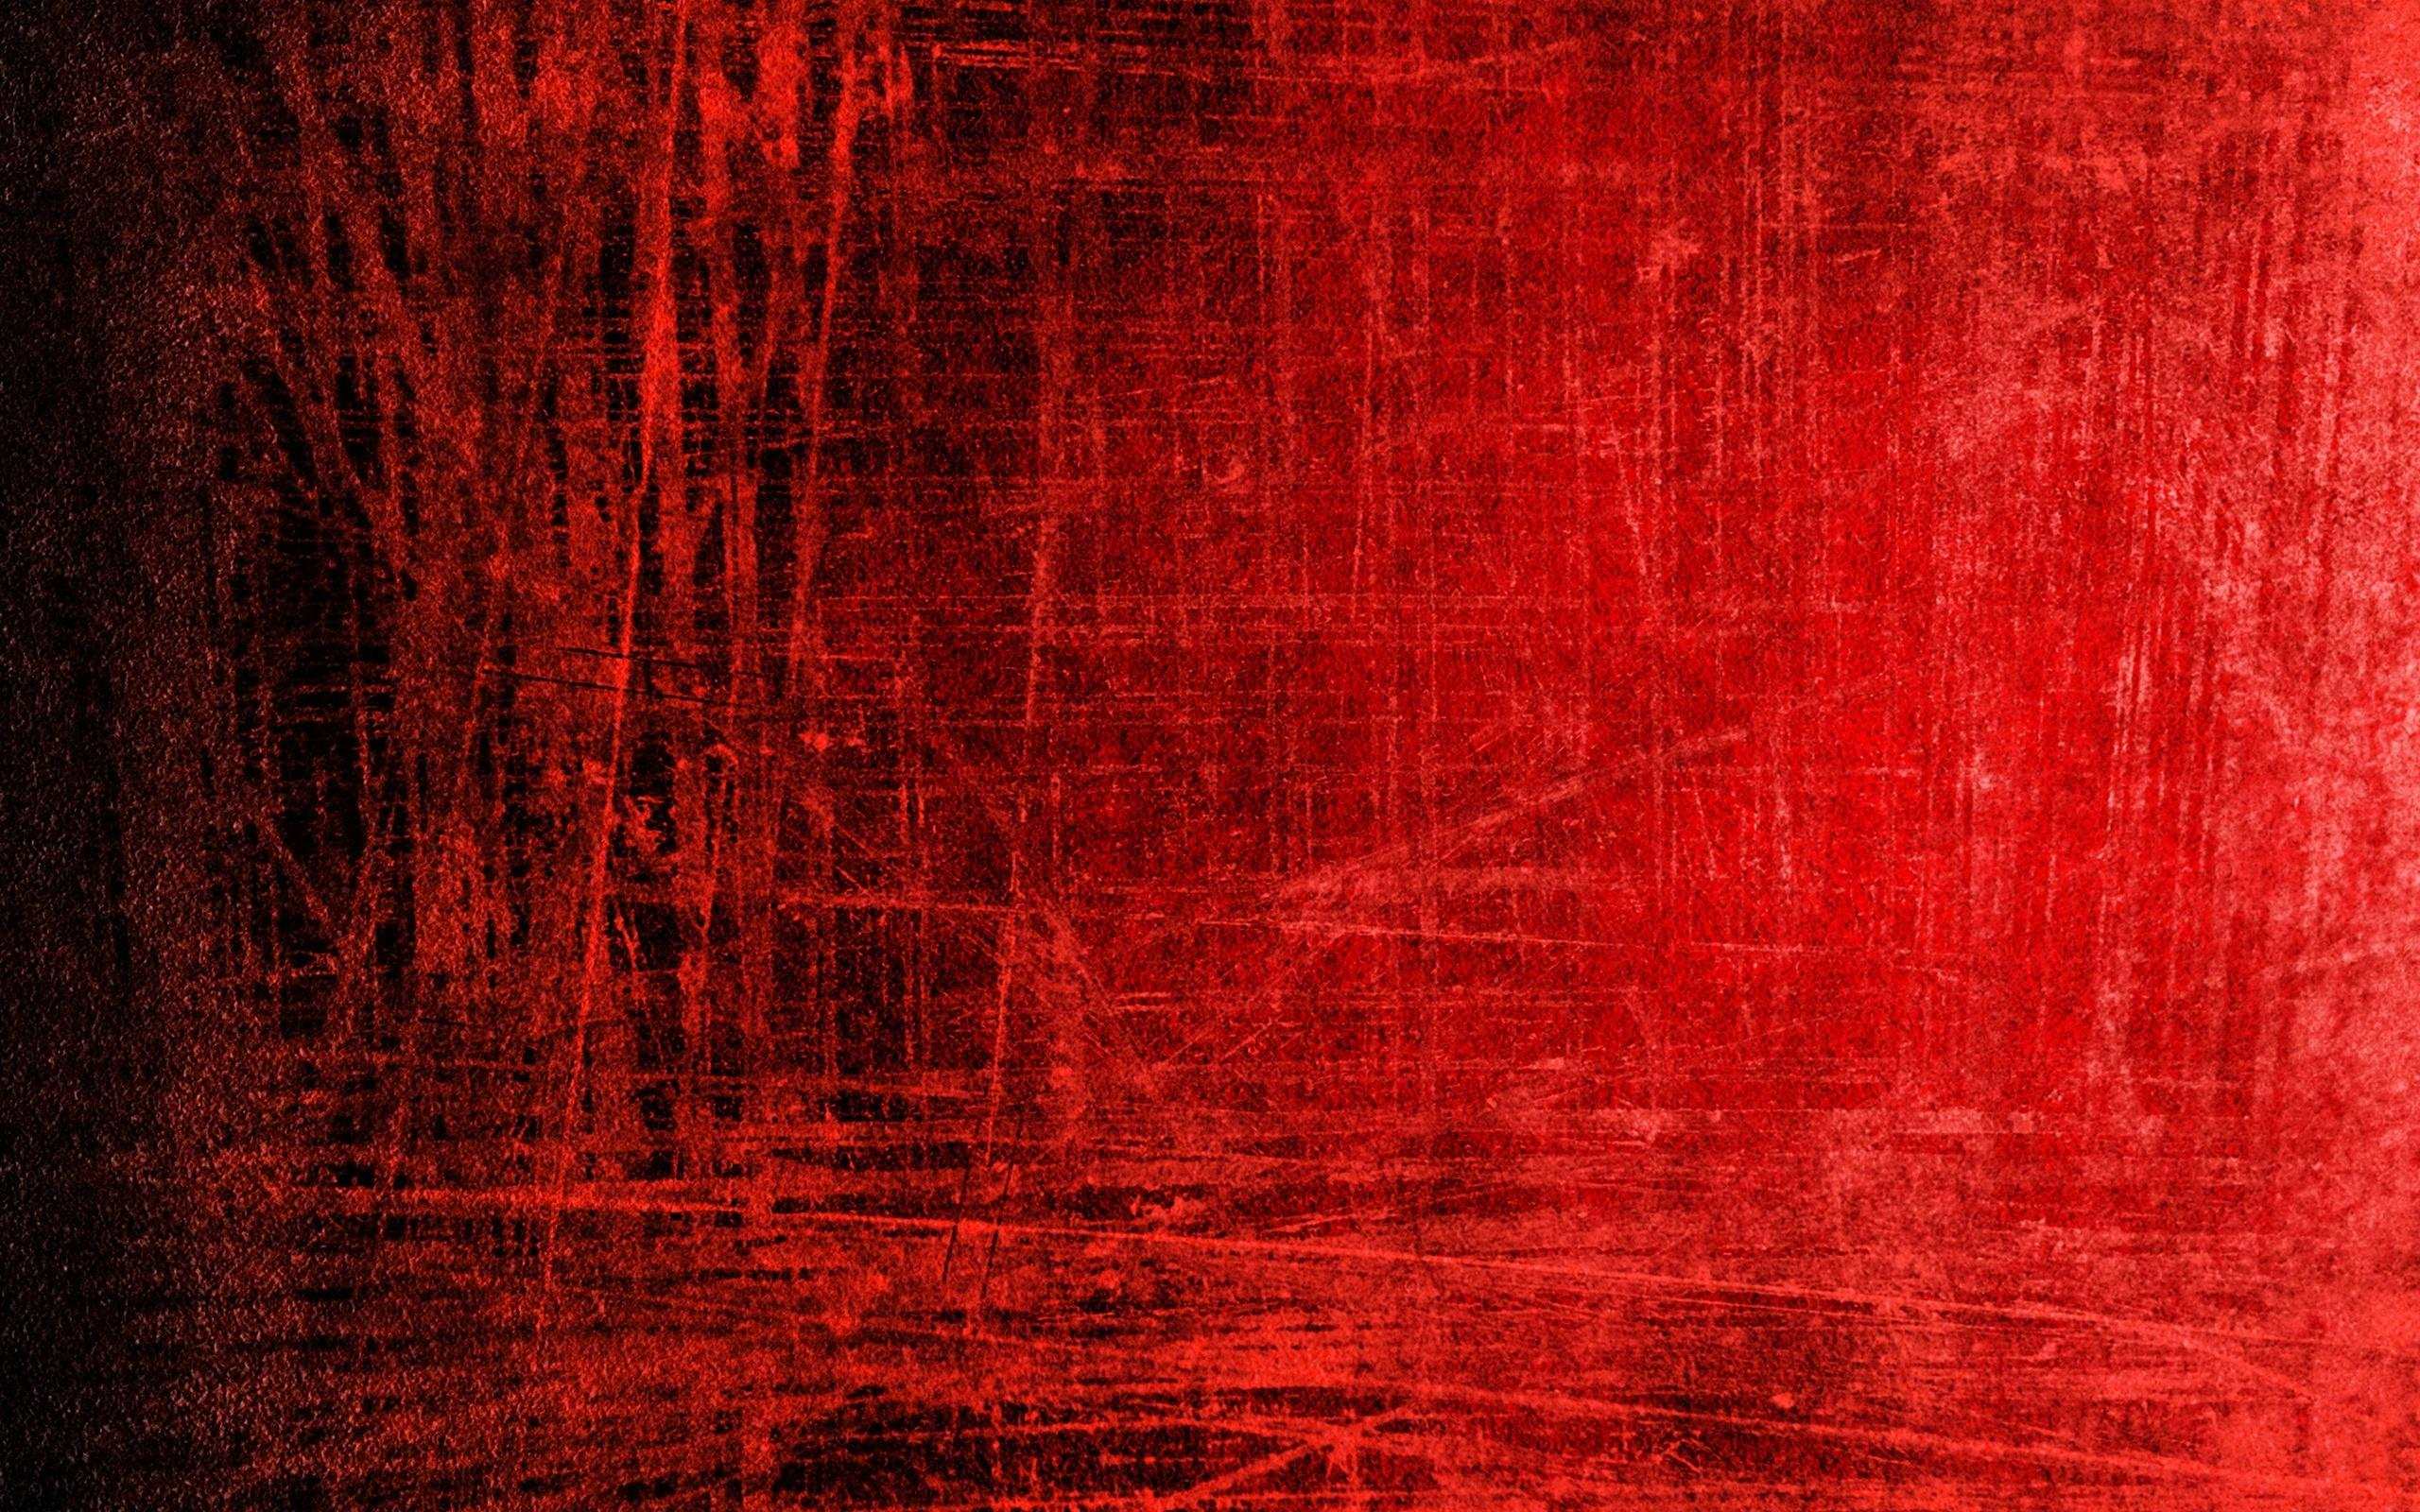 1 10000 red background wallpaper cool design backgrounds red